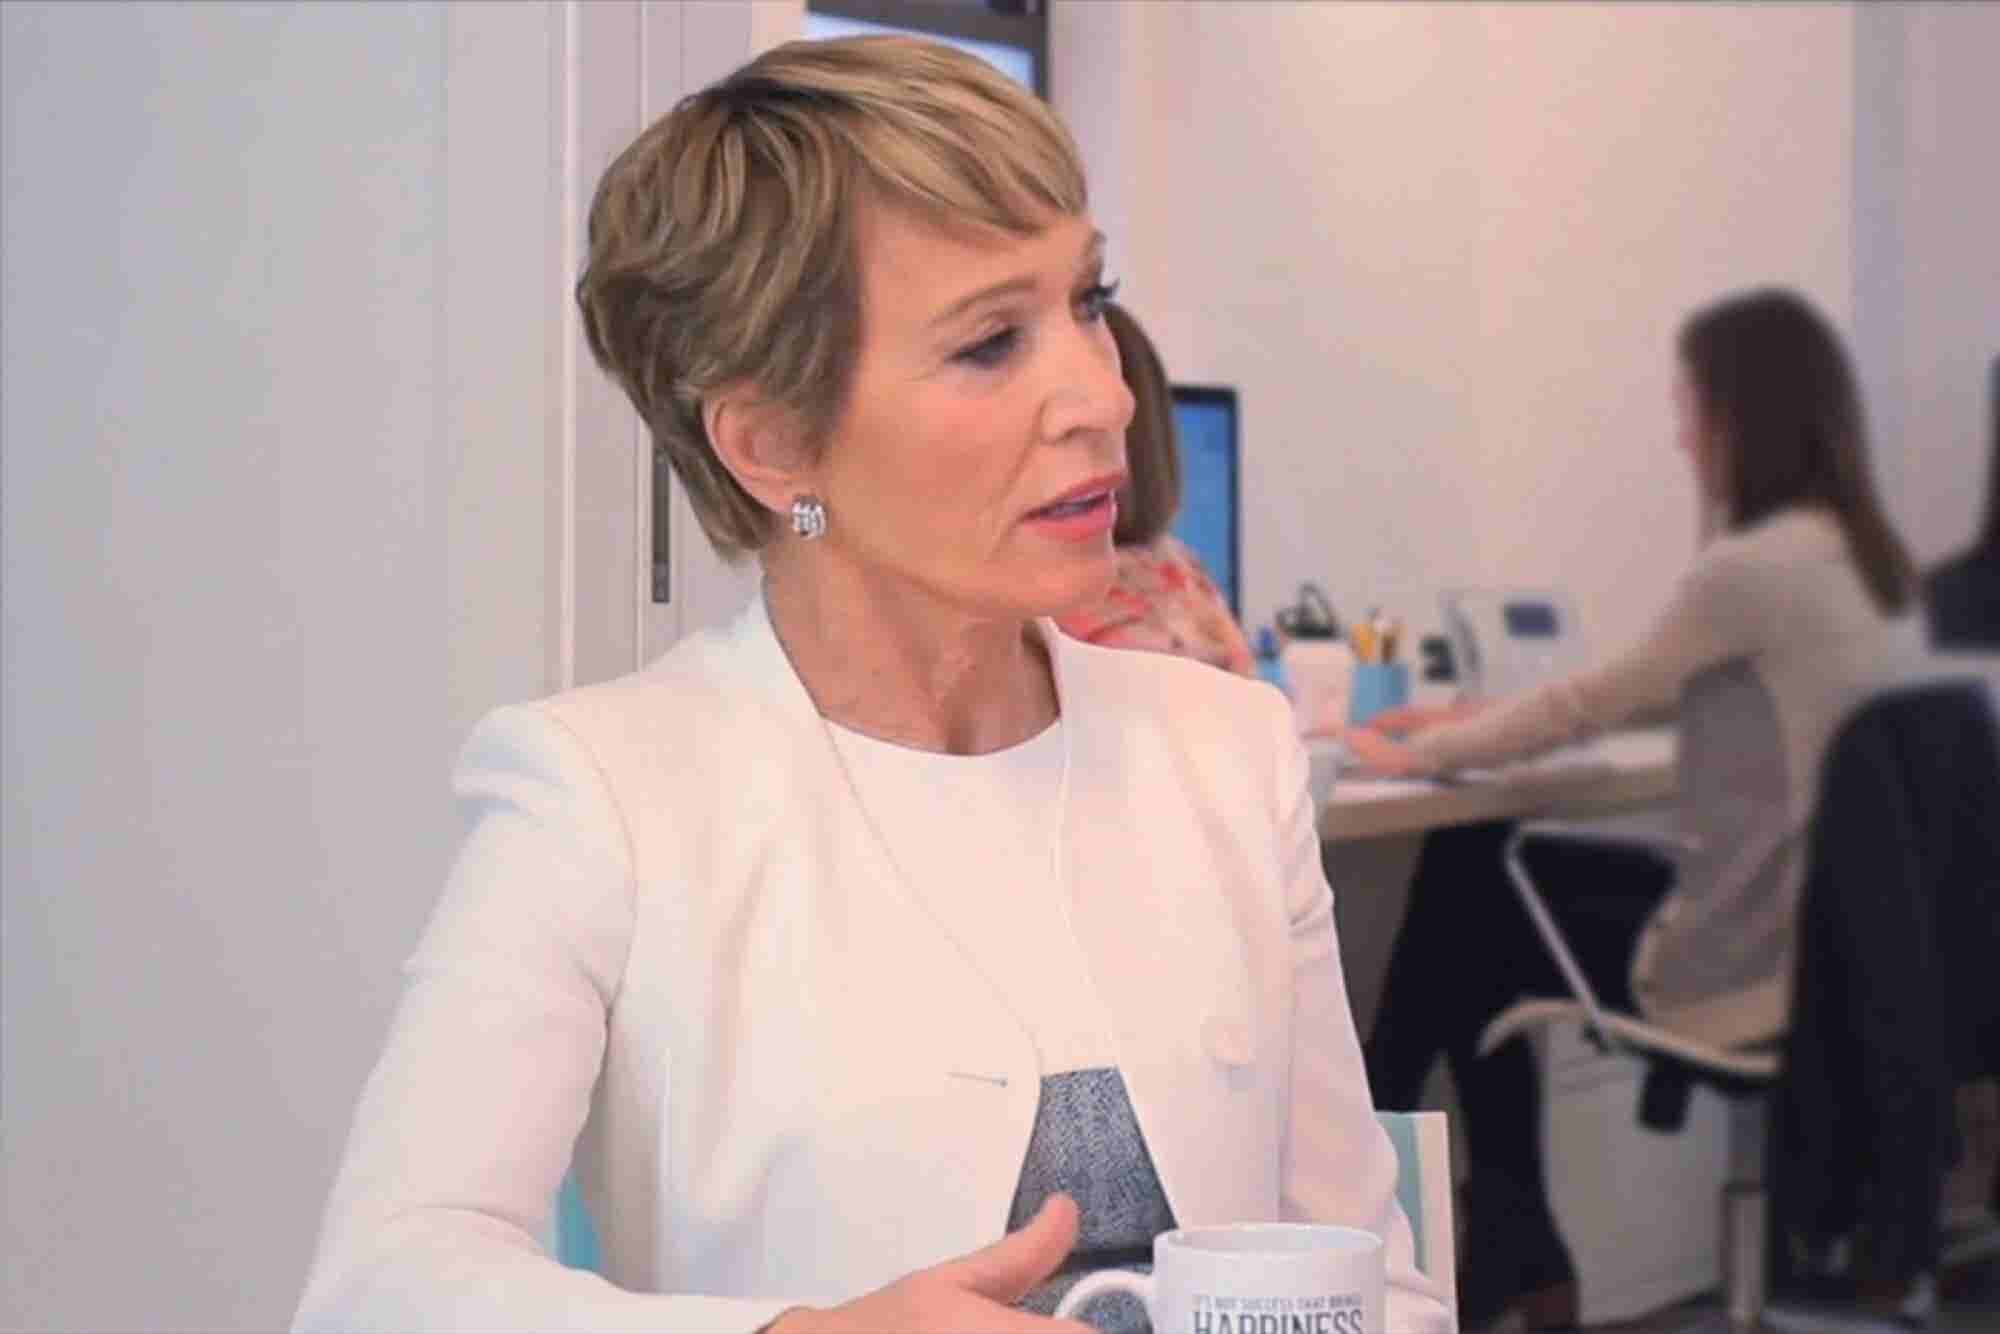 Barbara Corcoran Always Bounces Back By Loving Her Work and Her People